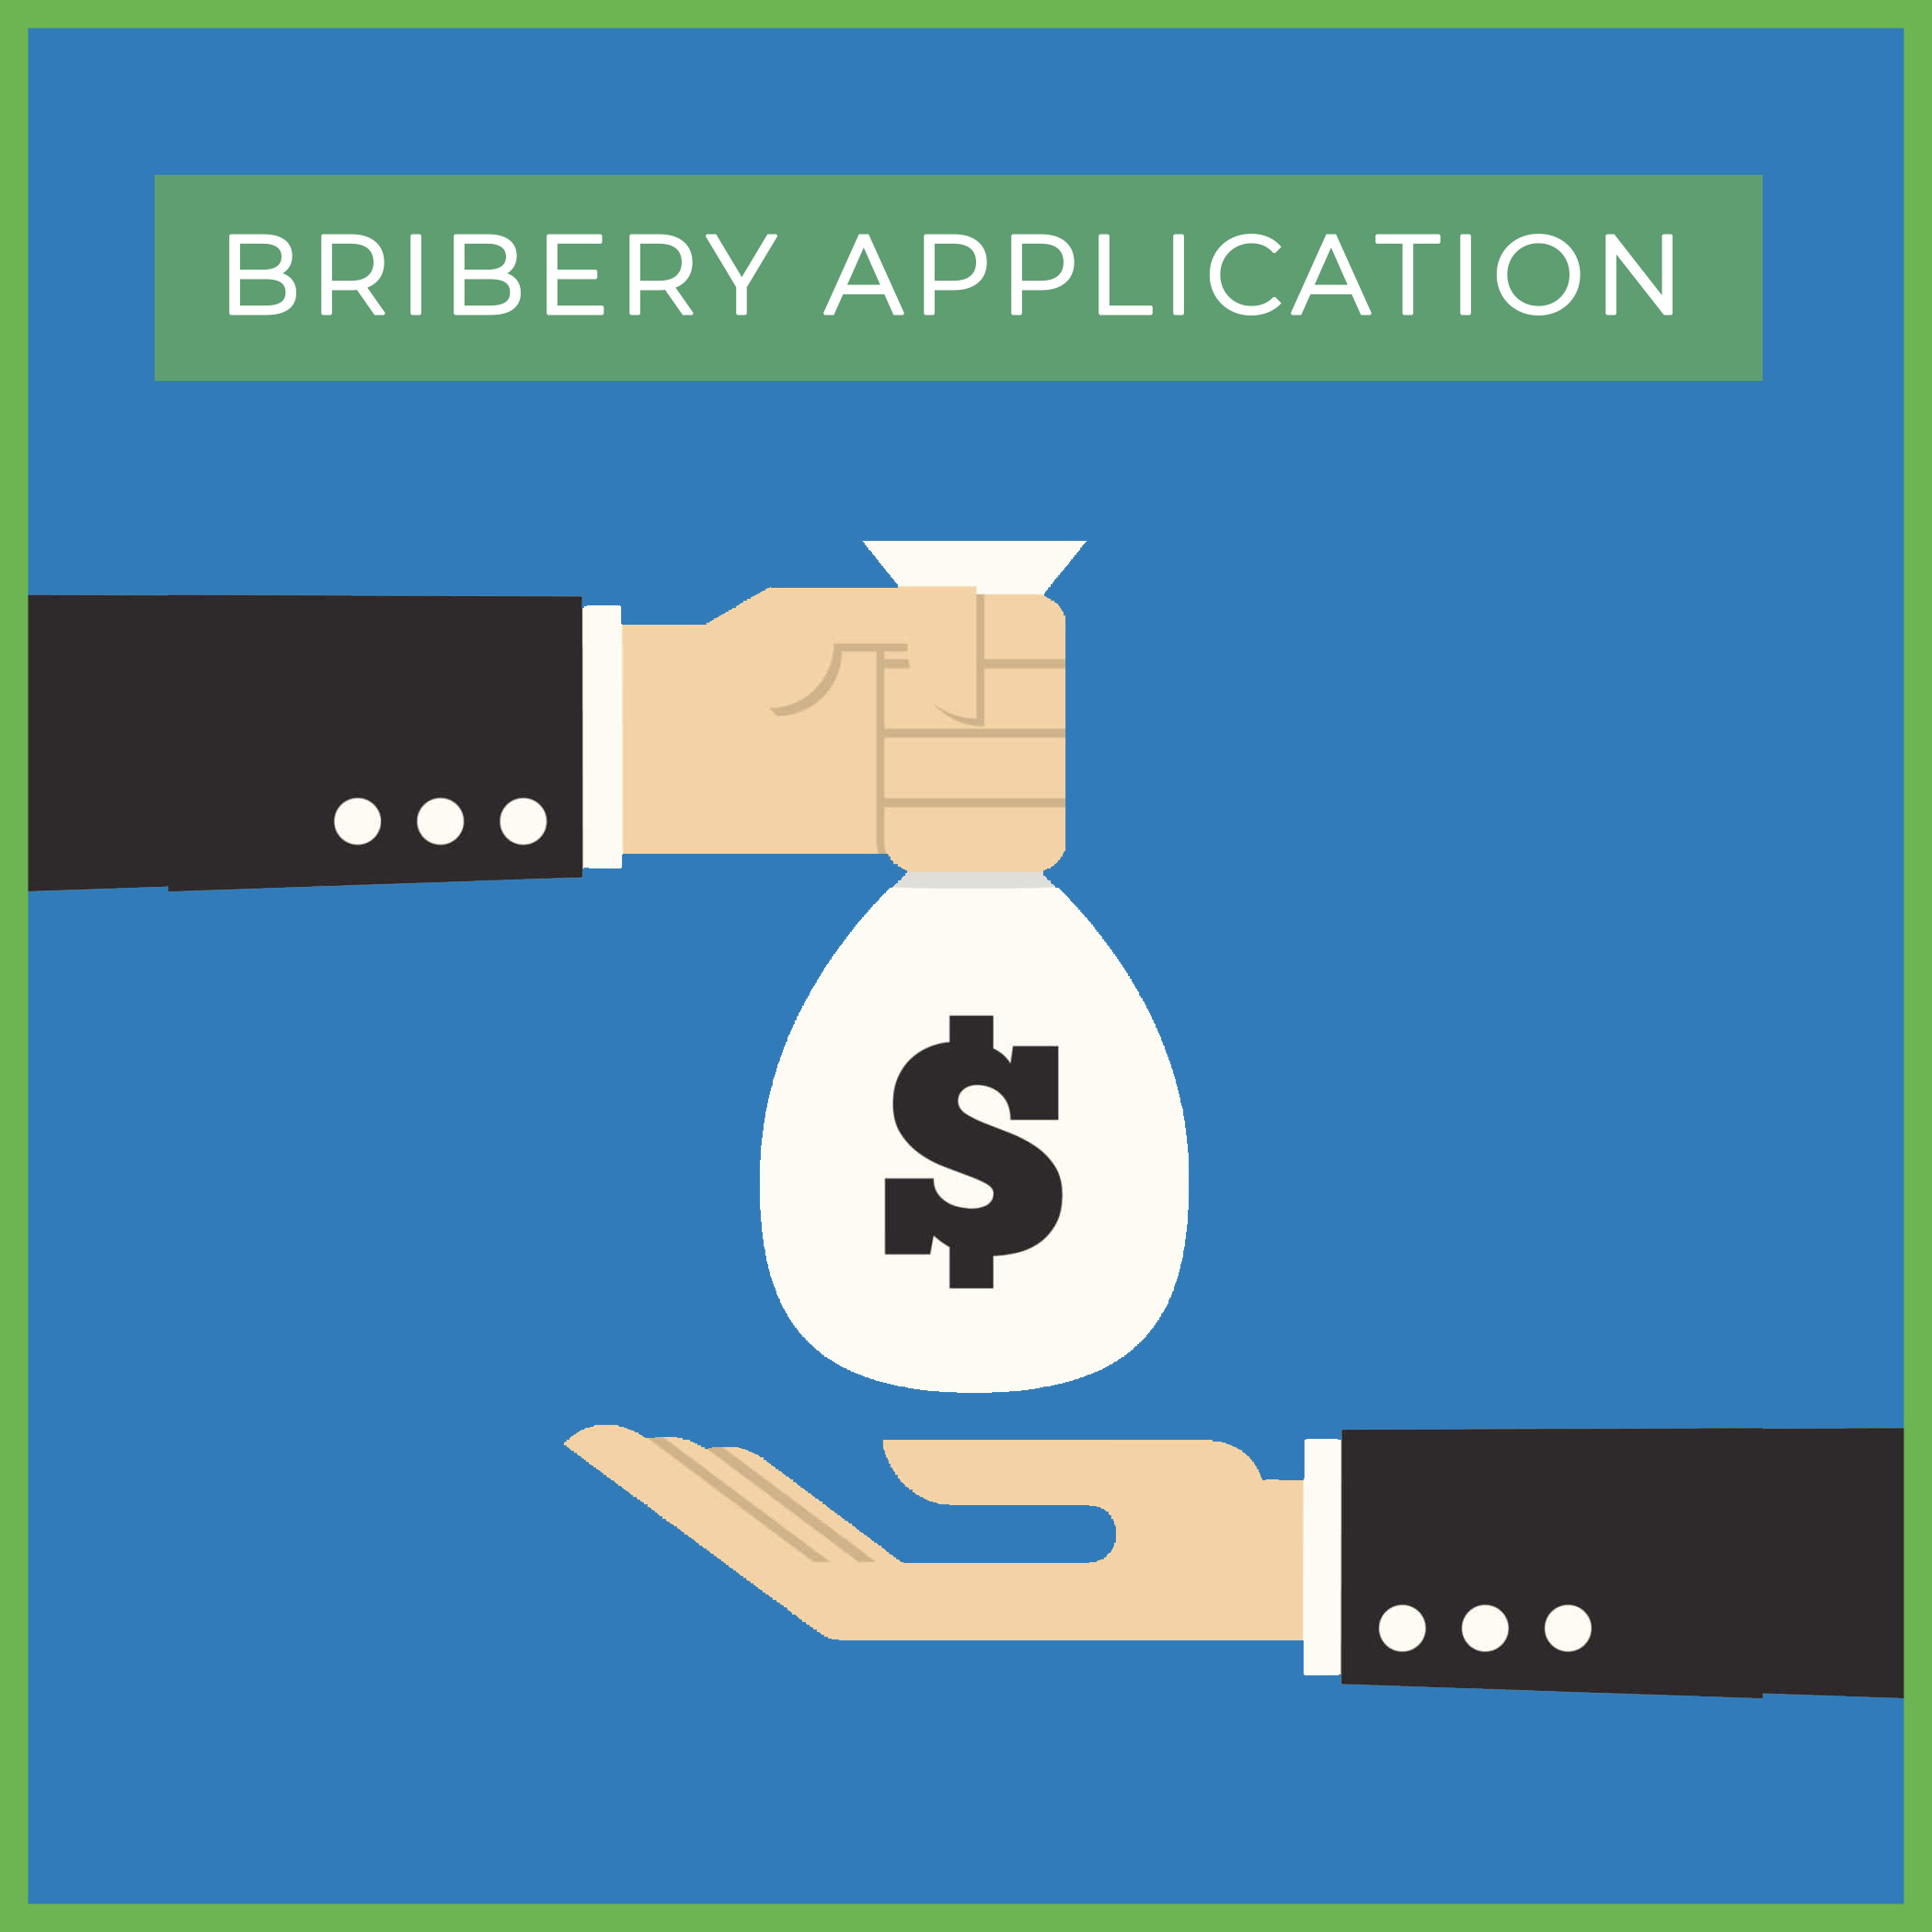 bribery-application-aba-therapy-blog-autism-cultivate.jpg